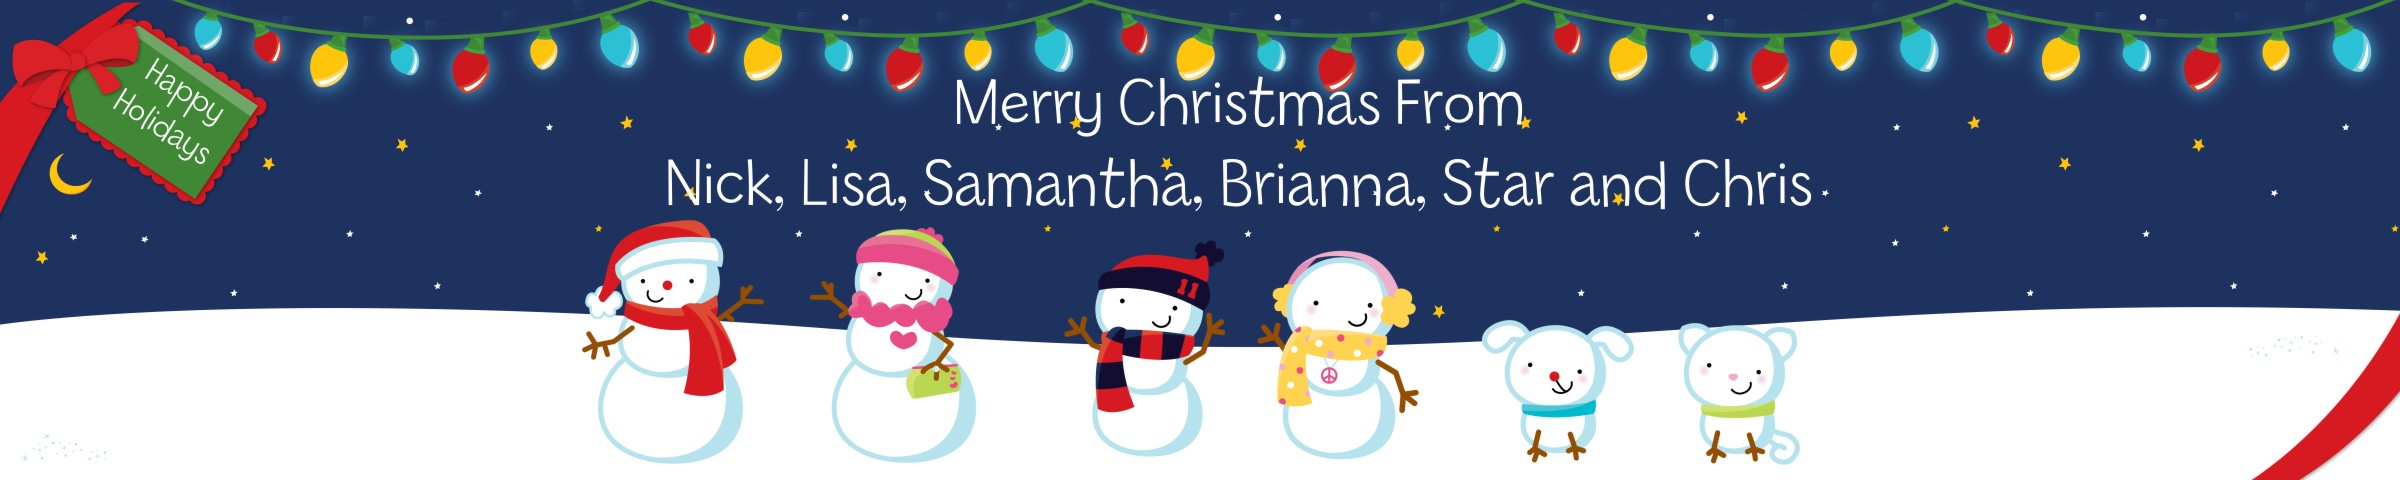 Christmas Banners.Snowman Family With Lights Personalized Christmas Banners